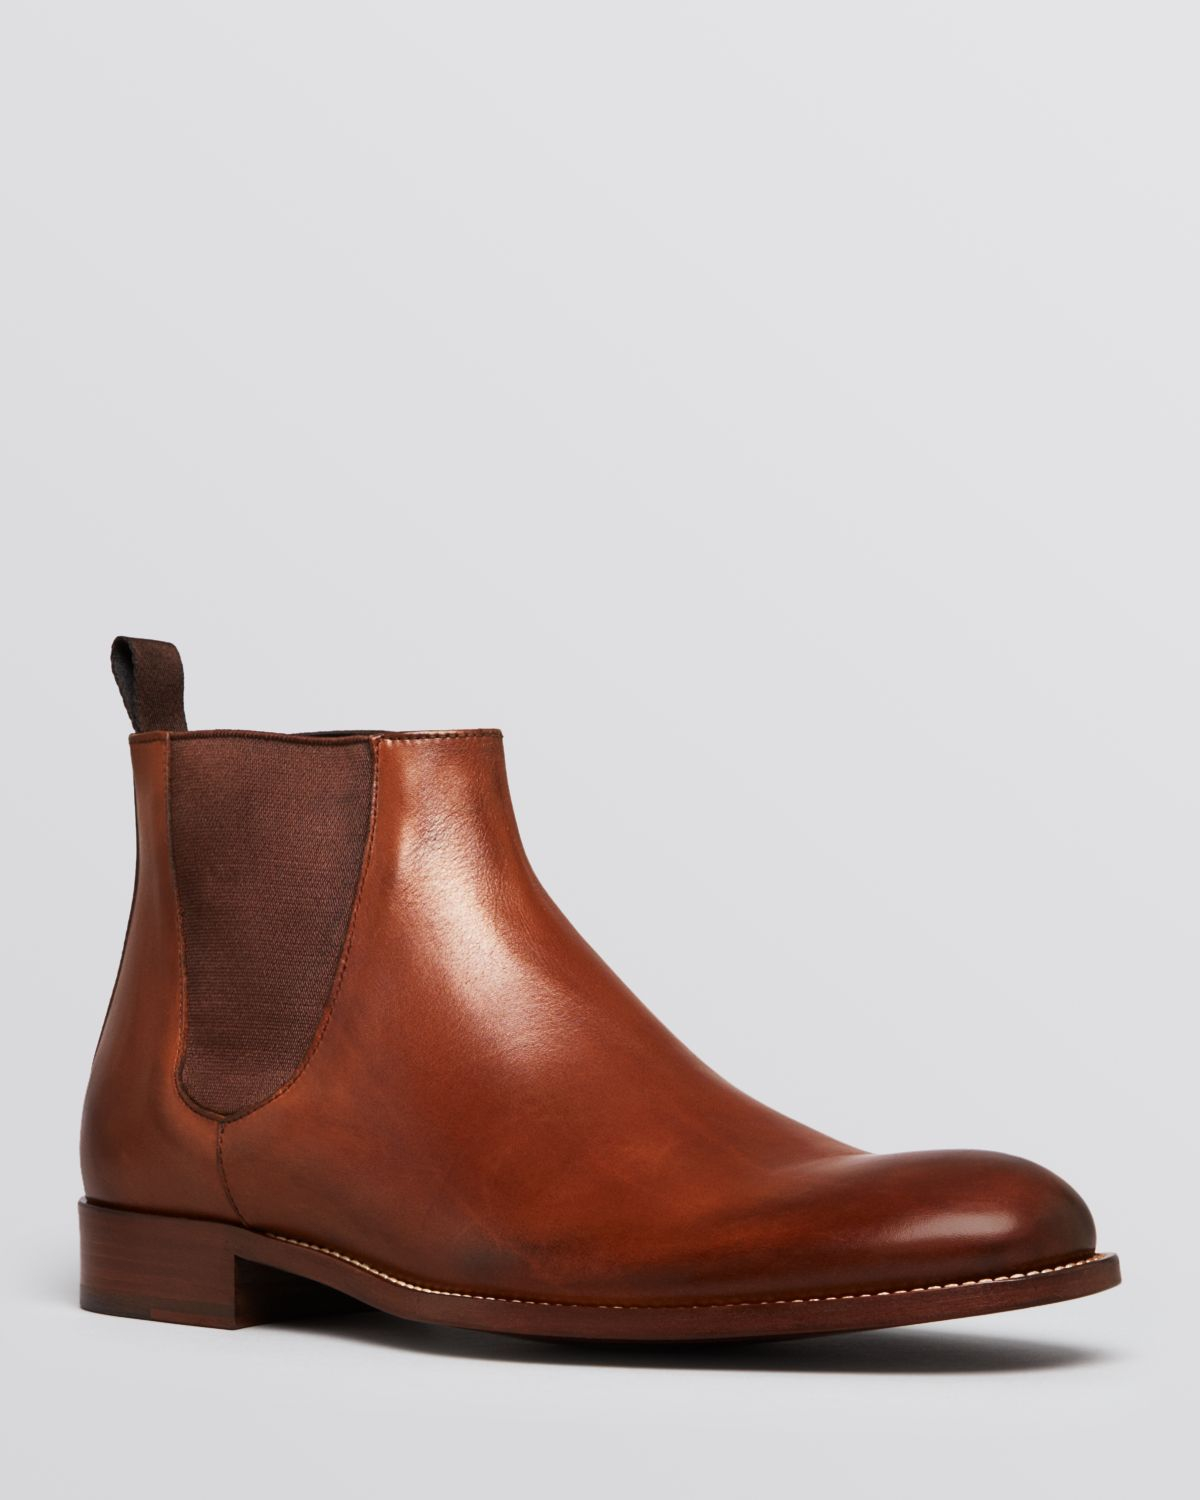 lyst to boot newbern chelsea boots in brown for men. Black Bedroom Furniture Sets. Home Design Ideas